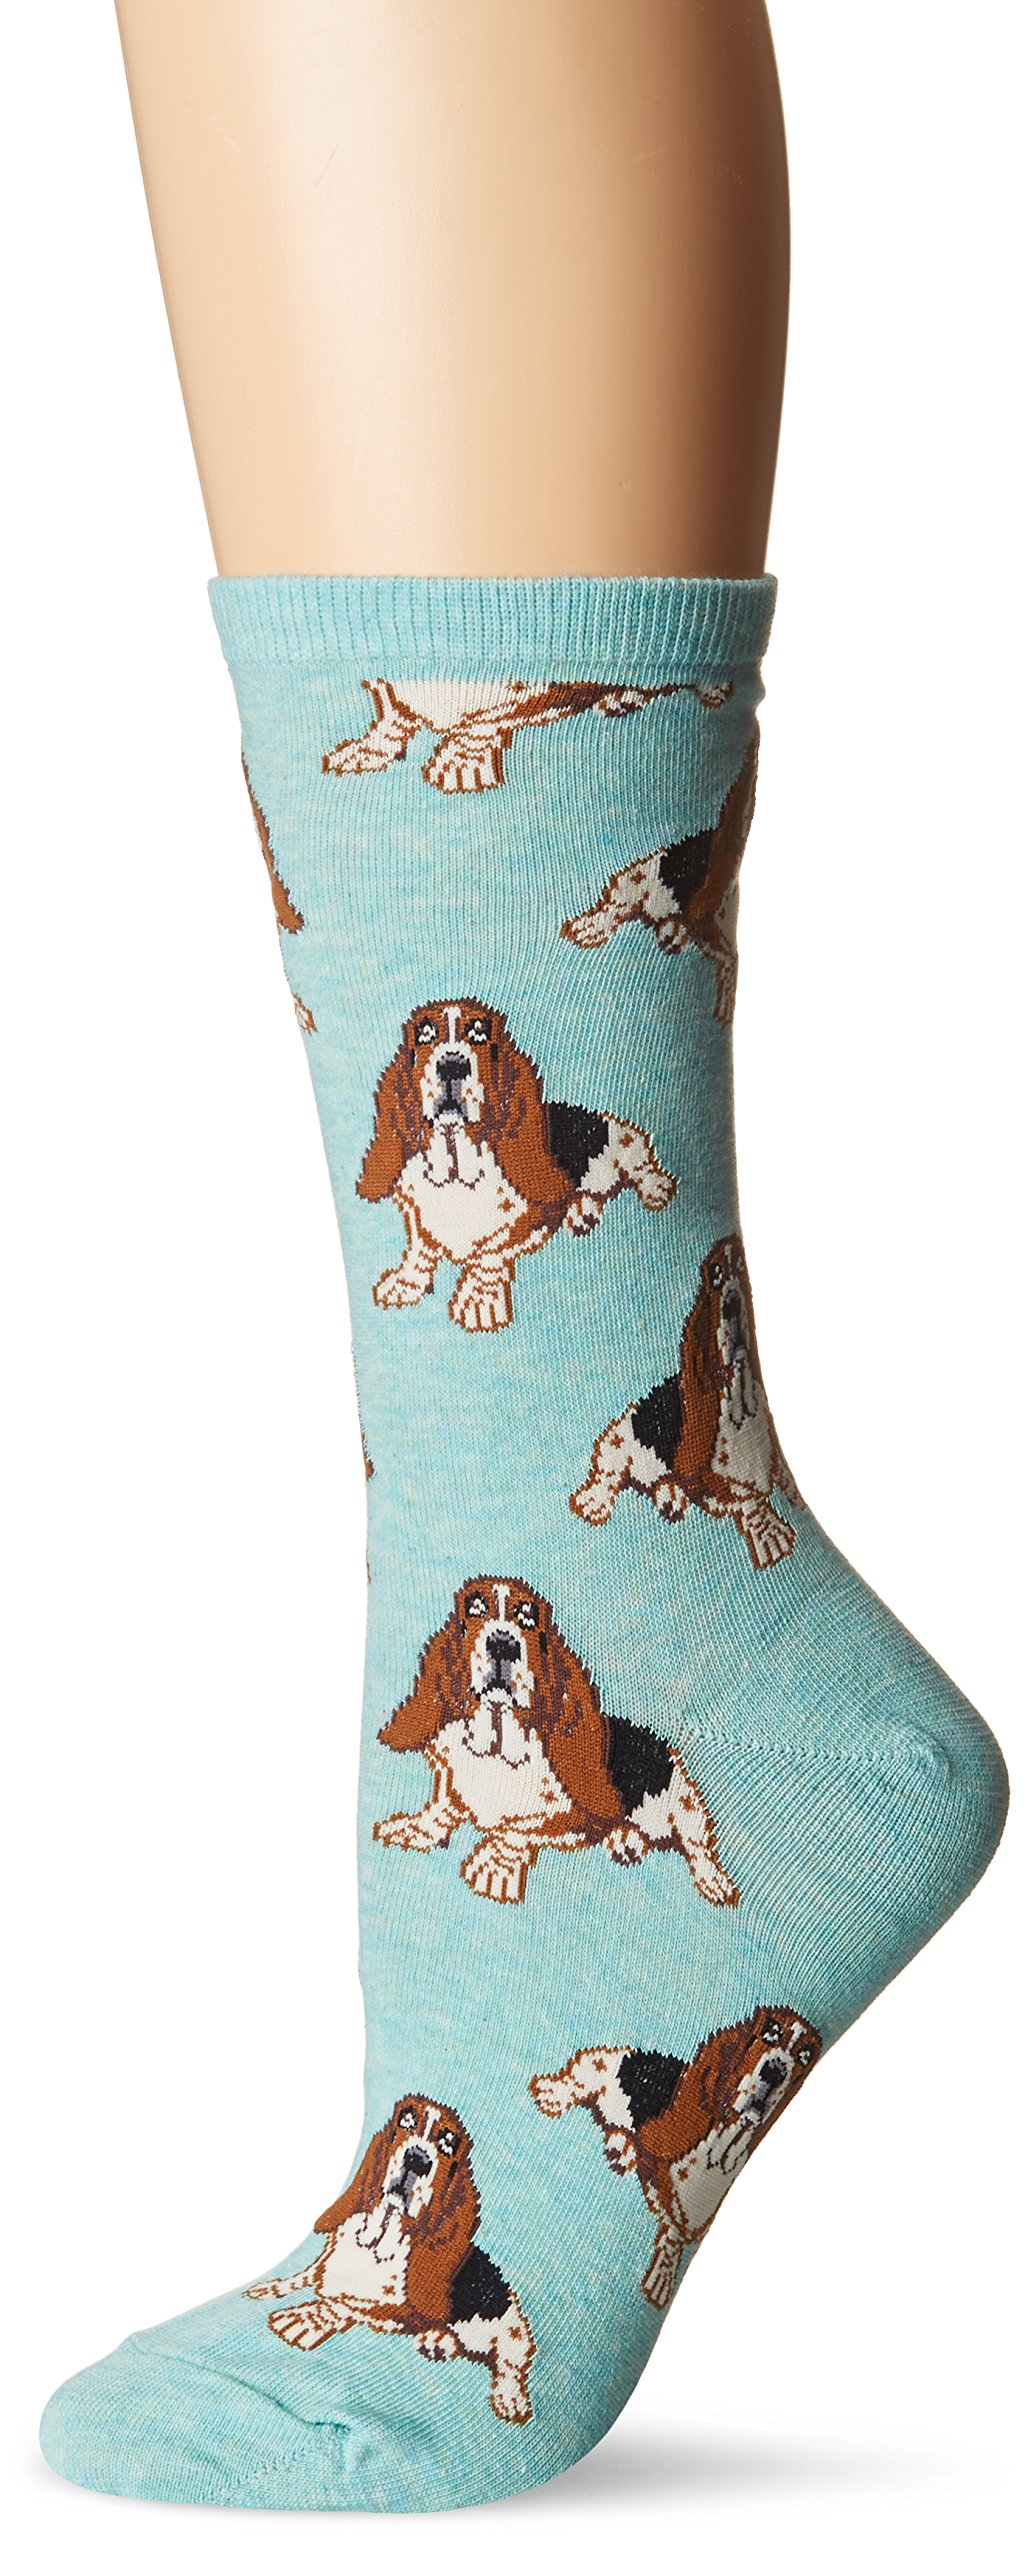 Socksmith Women's Nothing But A Hound Dog Socks